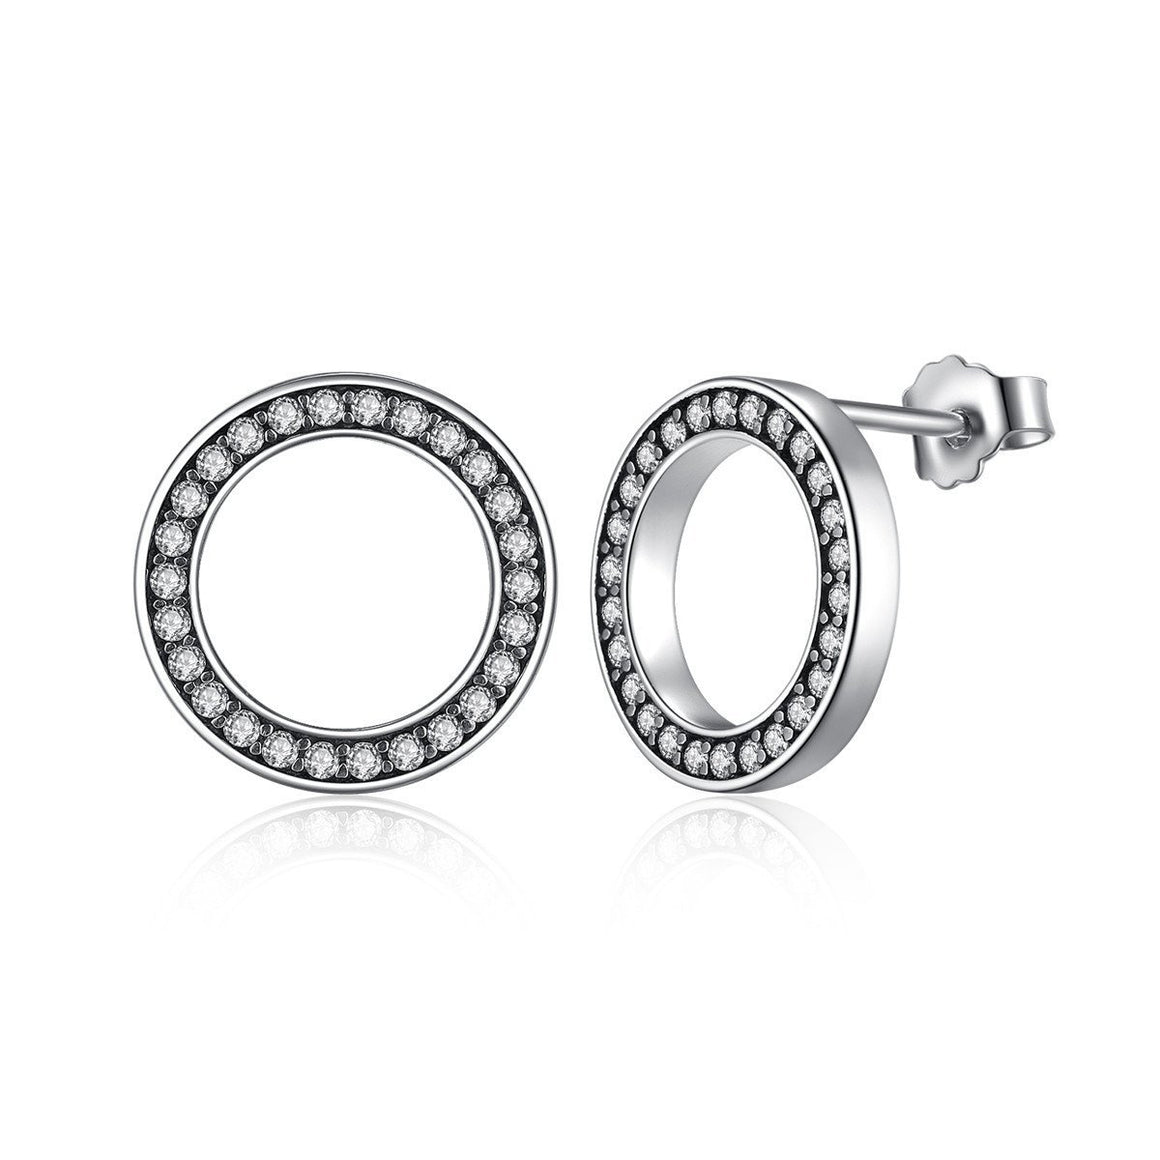 Forever Circle Round Stud Earrings